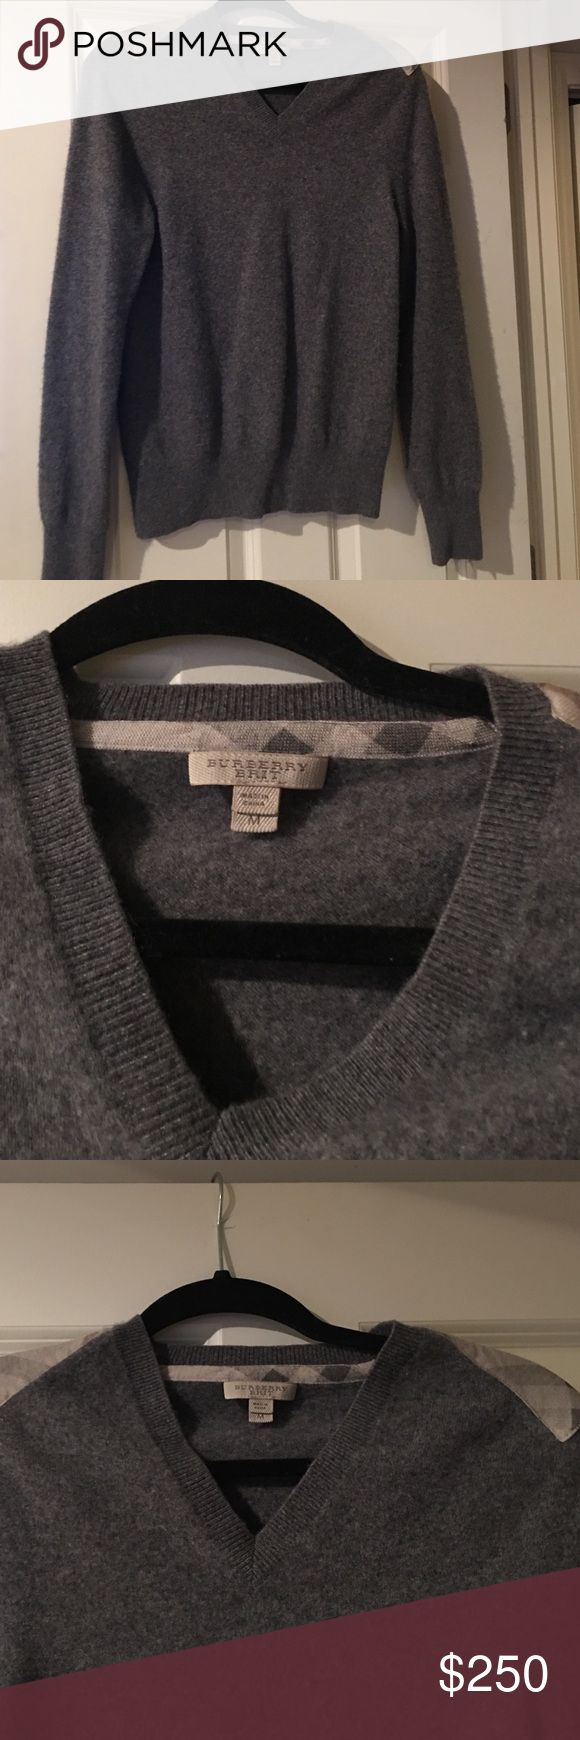 Burberry Men's Cashmere Sweater! This is a Burberry men's v-neck cashmere sweater! This has the signature print on the shoulders! Very good condition, there is a small hole (pictured above in the right armpit) it is not noticeable however, and could be easily fixed! Paid $800 for this sweater new several years ago! Burberry Sweaters V-Necks